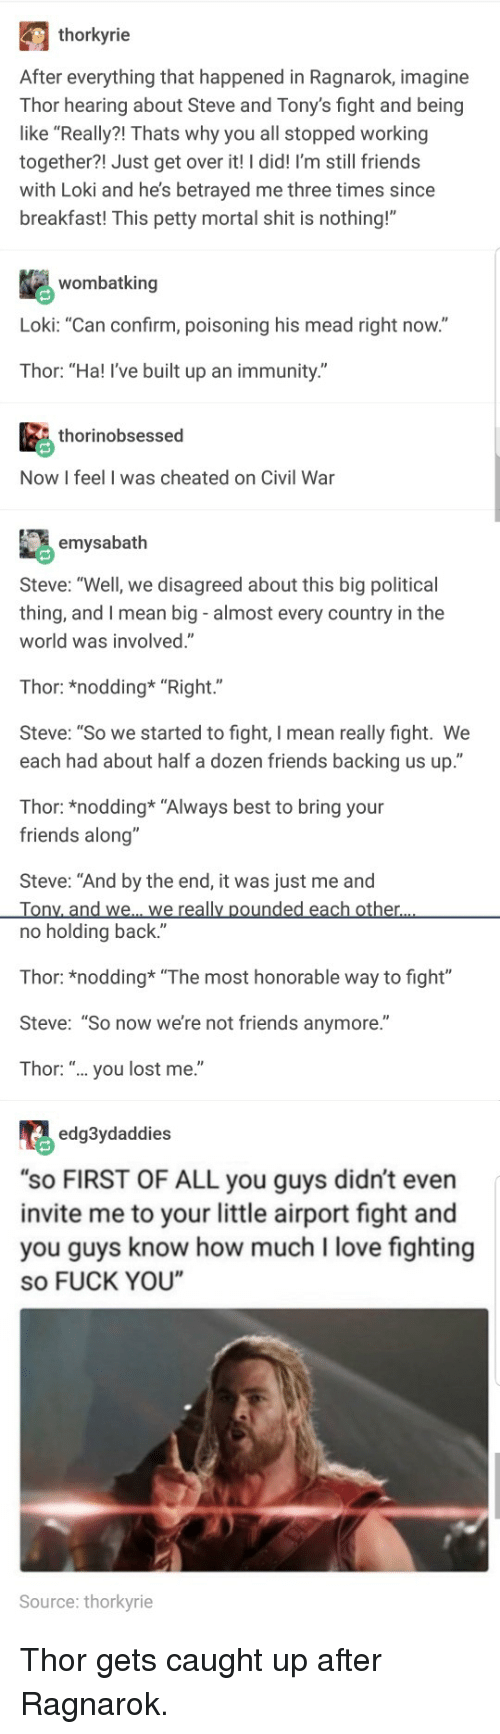 """Friends, Fuck You, and Love: thorkyrie  After everything that happened in Ragnarok, imagine  Thor hearing about Steve and Tony's fight and being  like """"Really?! Thats why you all stopped working  together?! Just get over it! I did! I'm still friends  with Loki and he's betrayed me three times since  breakfast! This petty mortal shit is nothing!""""  wombatking  Loki: """"Can confirm, poisoning his mead right now.""""  Thor: """"Ha! I've built up an immunity.""""  thorinobsessed  Now I feel I was cheated on Civil War  emysabath  Steve: """"Well, we disagreed about this big political  thing, and I mean big - almost every country in the  world was involved.""""  Thor: *nodding* """"Right.""""  Steve: """"So we started to fight, I mean really fight. We  each had about half a dozen friends backing us up.""""  Thor: *nodding* """"Always best to bring your  friends along""""  Steve: """"And by the end, it was just me and  no holding back.""""  Thor: *nodding """"The most honorable way to fight""""  Steve: """"So now we're not friends anymore.""""  Thor: """".. you lost me.""""  edg3ydaddies  """"sO FIRST OF ALL you guys didn't even  invite me to your little airport fight and  you guys know how much I love fighting  so FUCK YOU  Source: thorkyrie"""